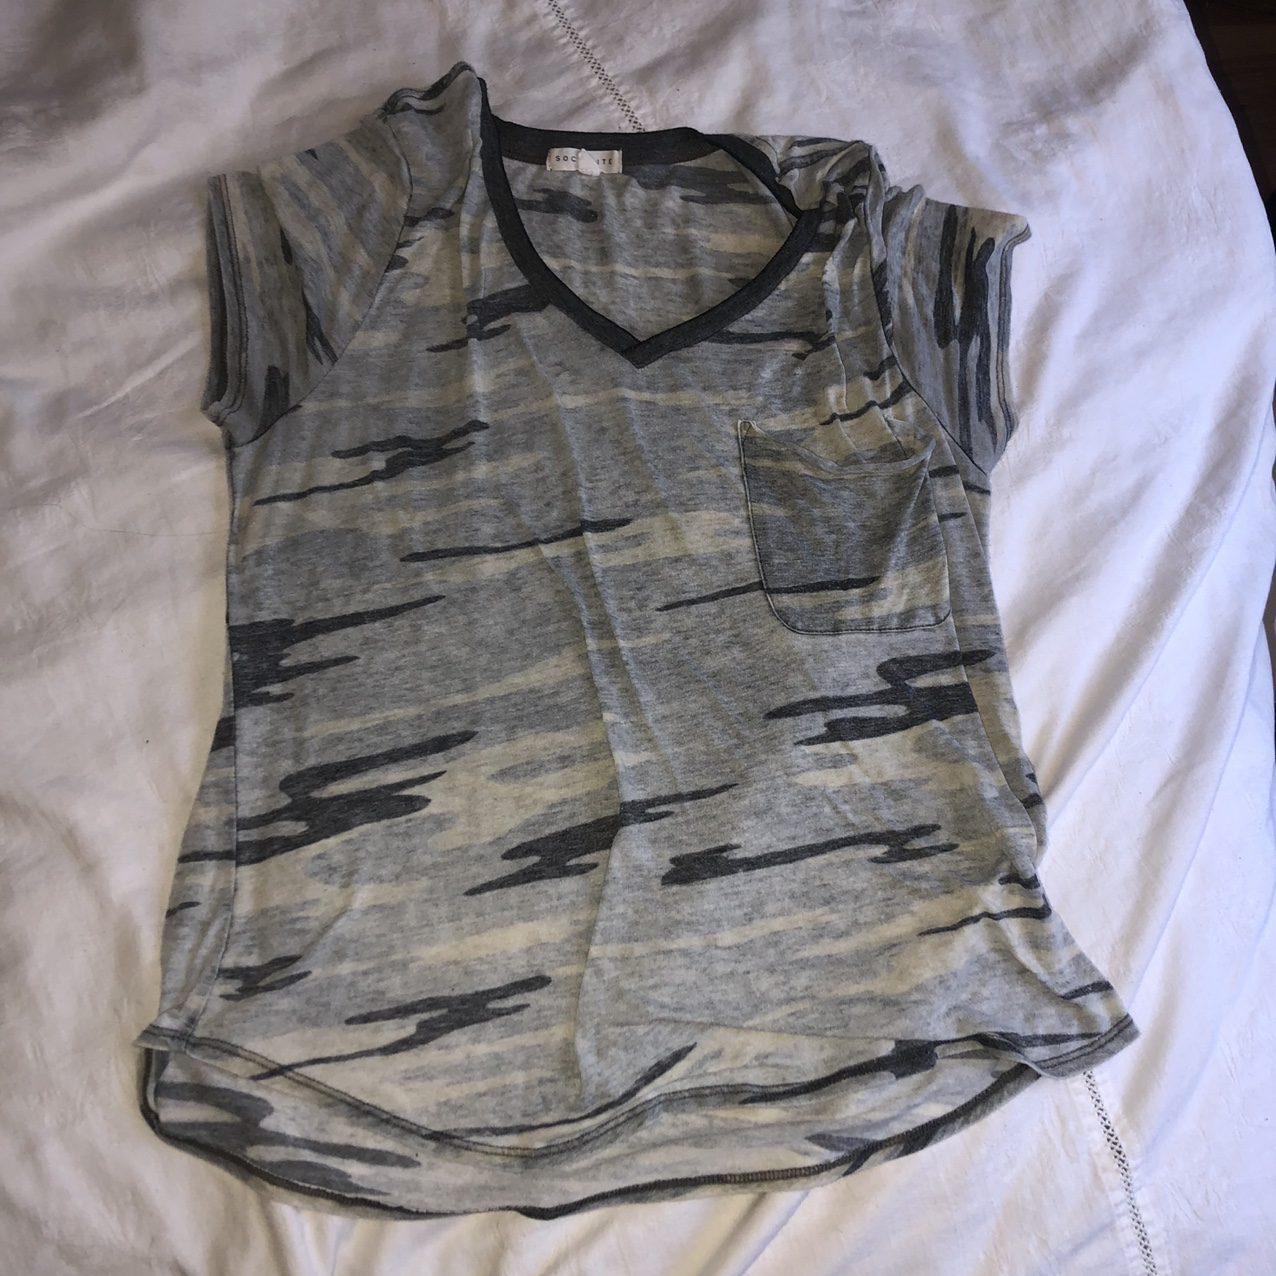 Product Image 1 - Nordstrom's Camo Tee super cute